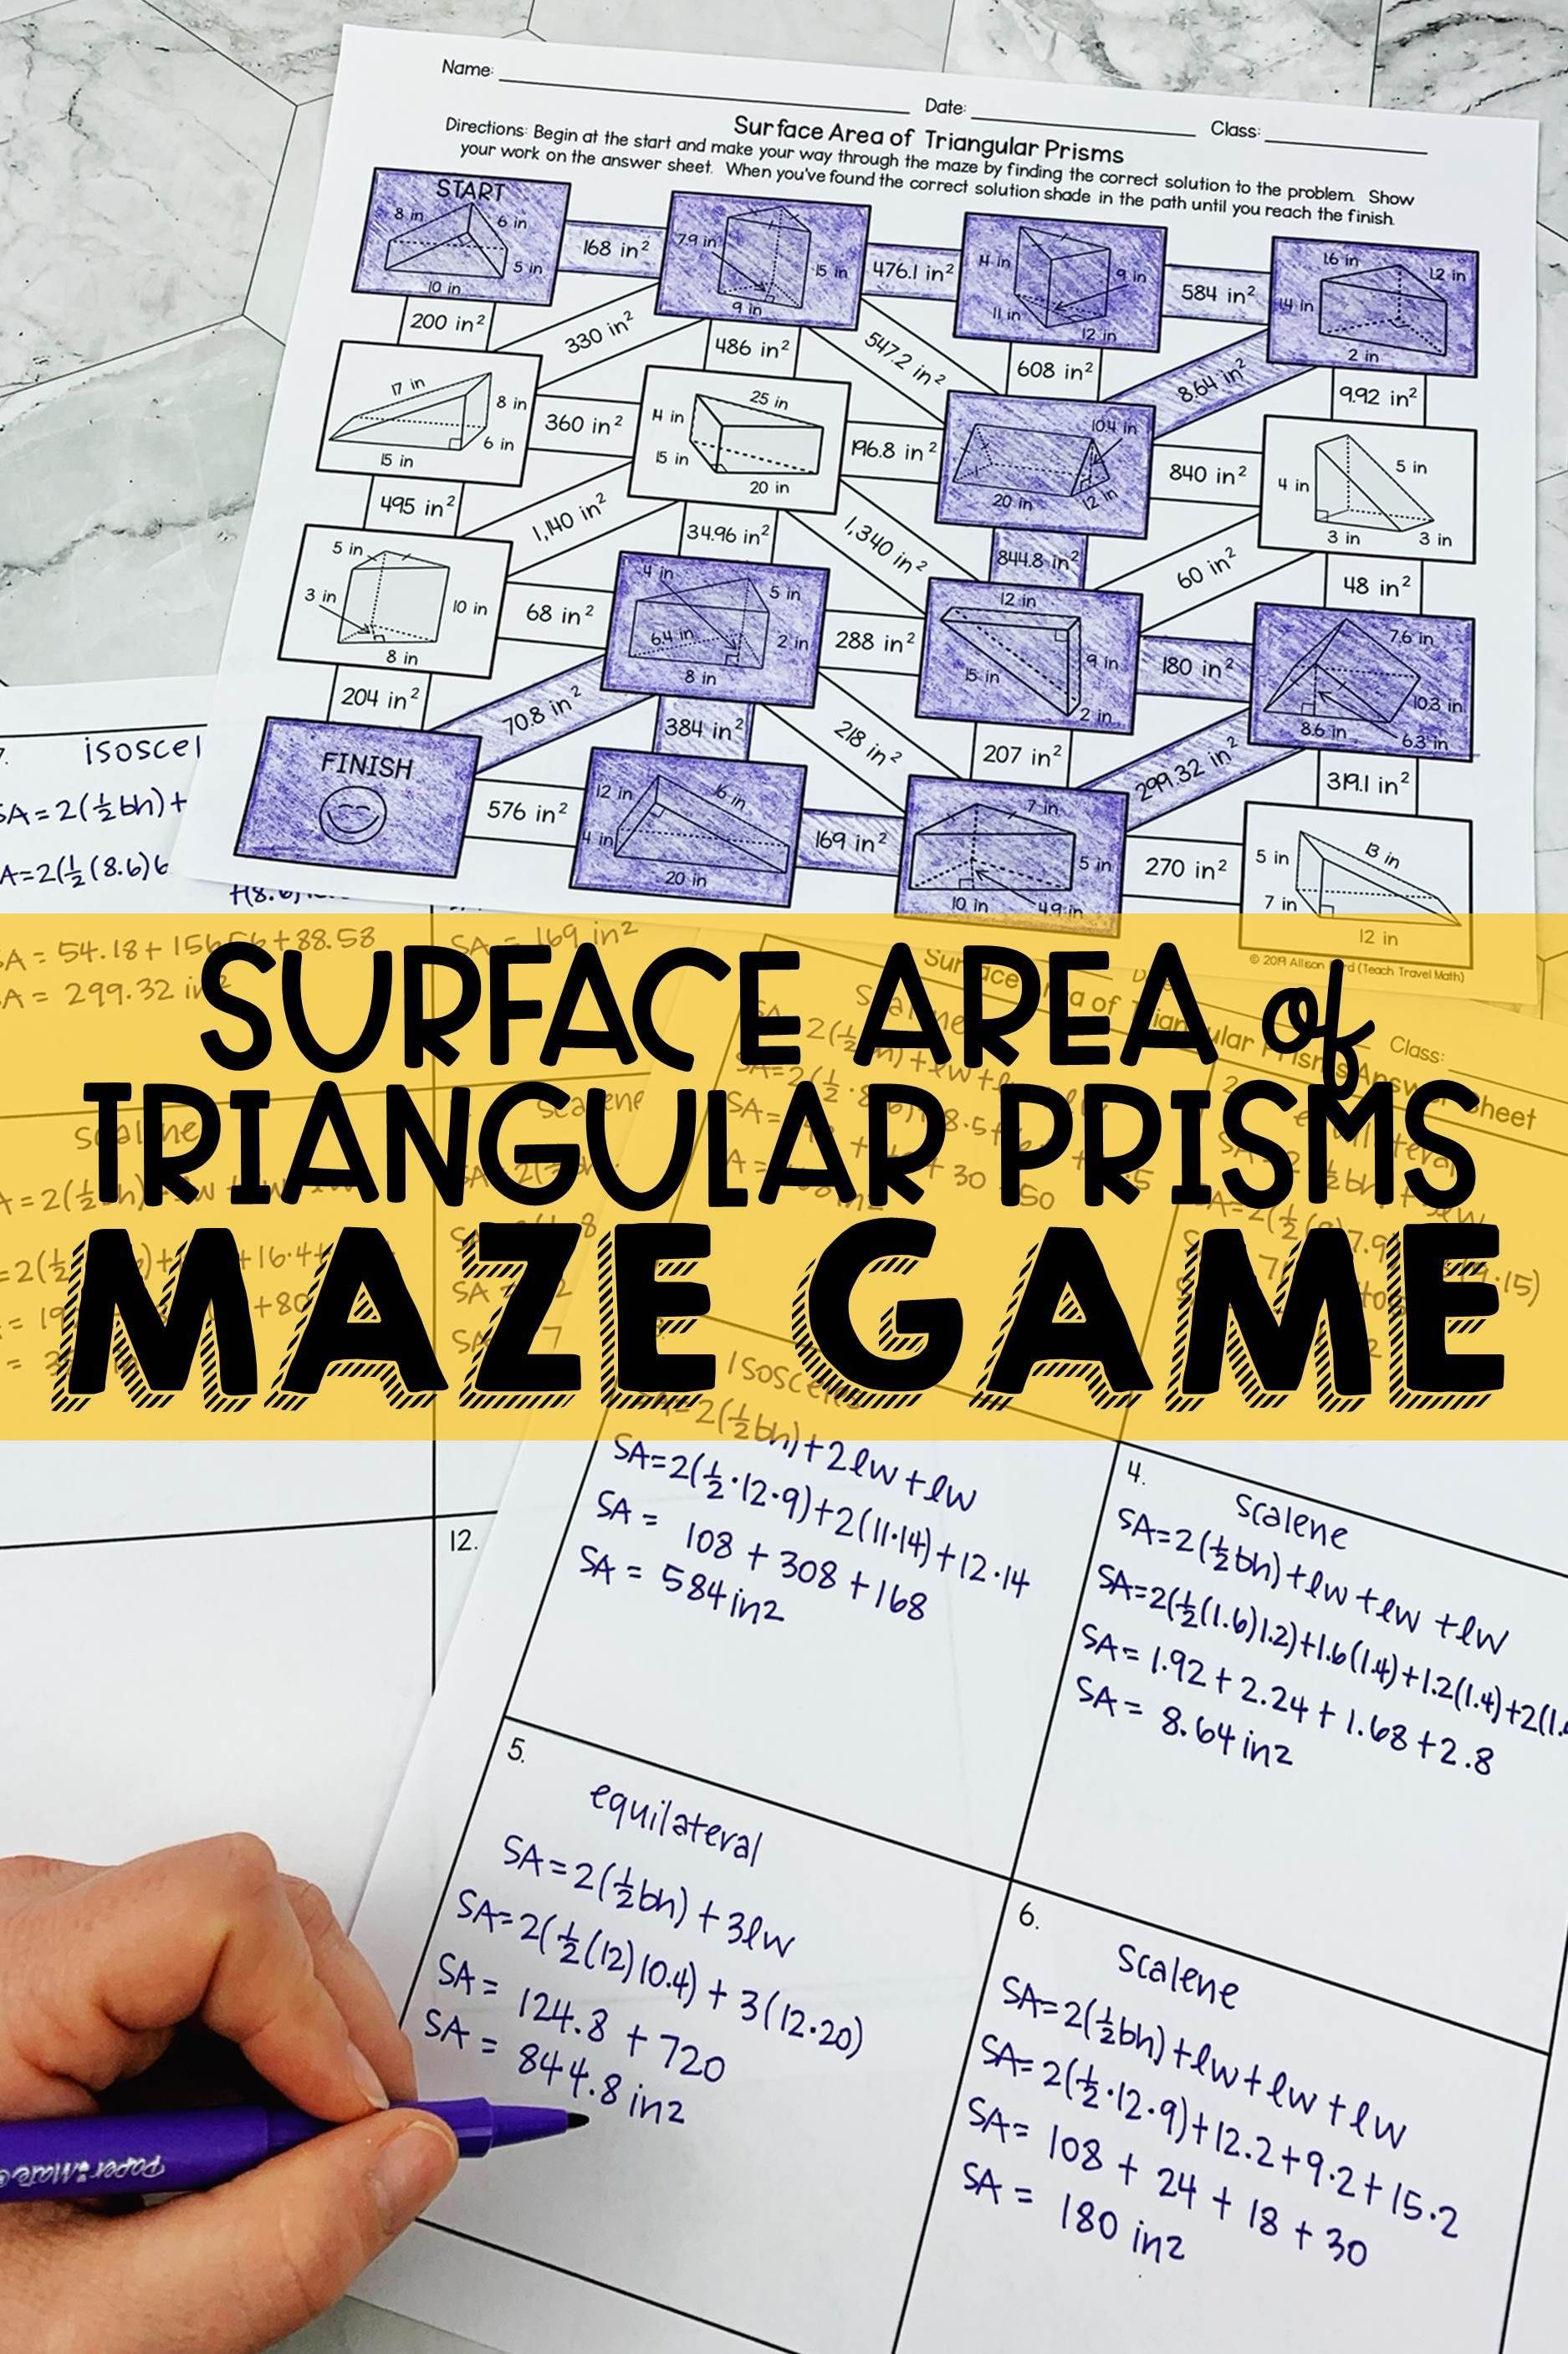 Surface Area Of Triangular Prisms Maze